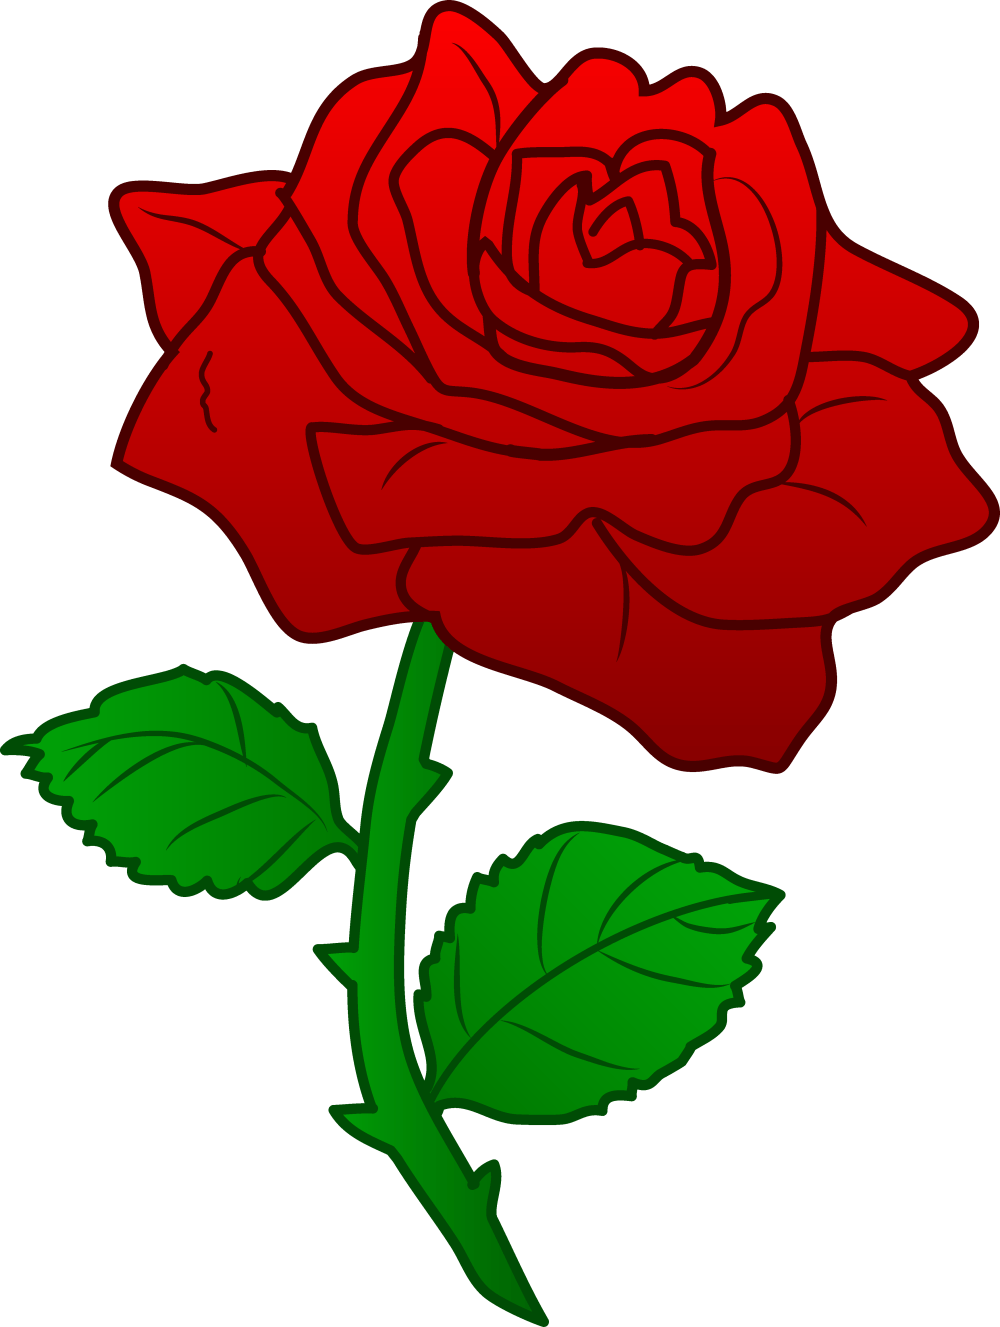 medium resolution of clipart flower rose free clipart images